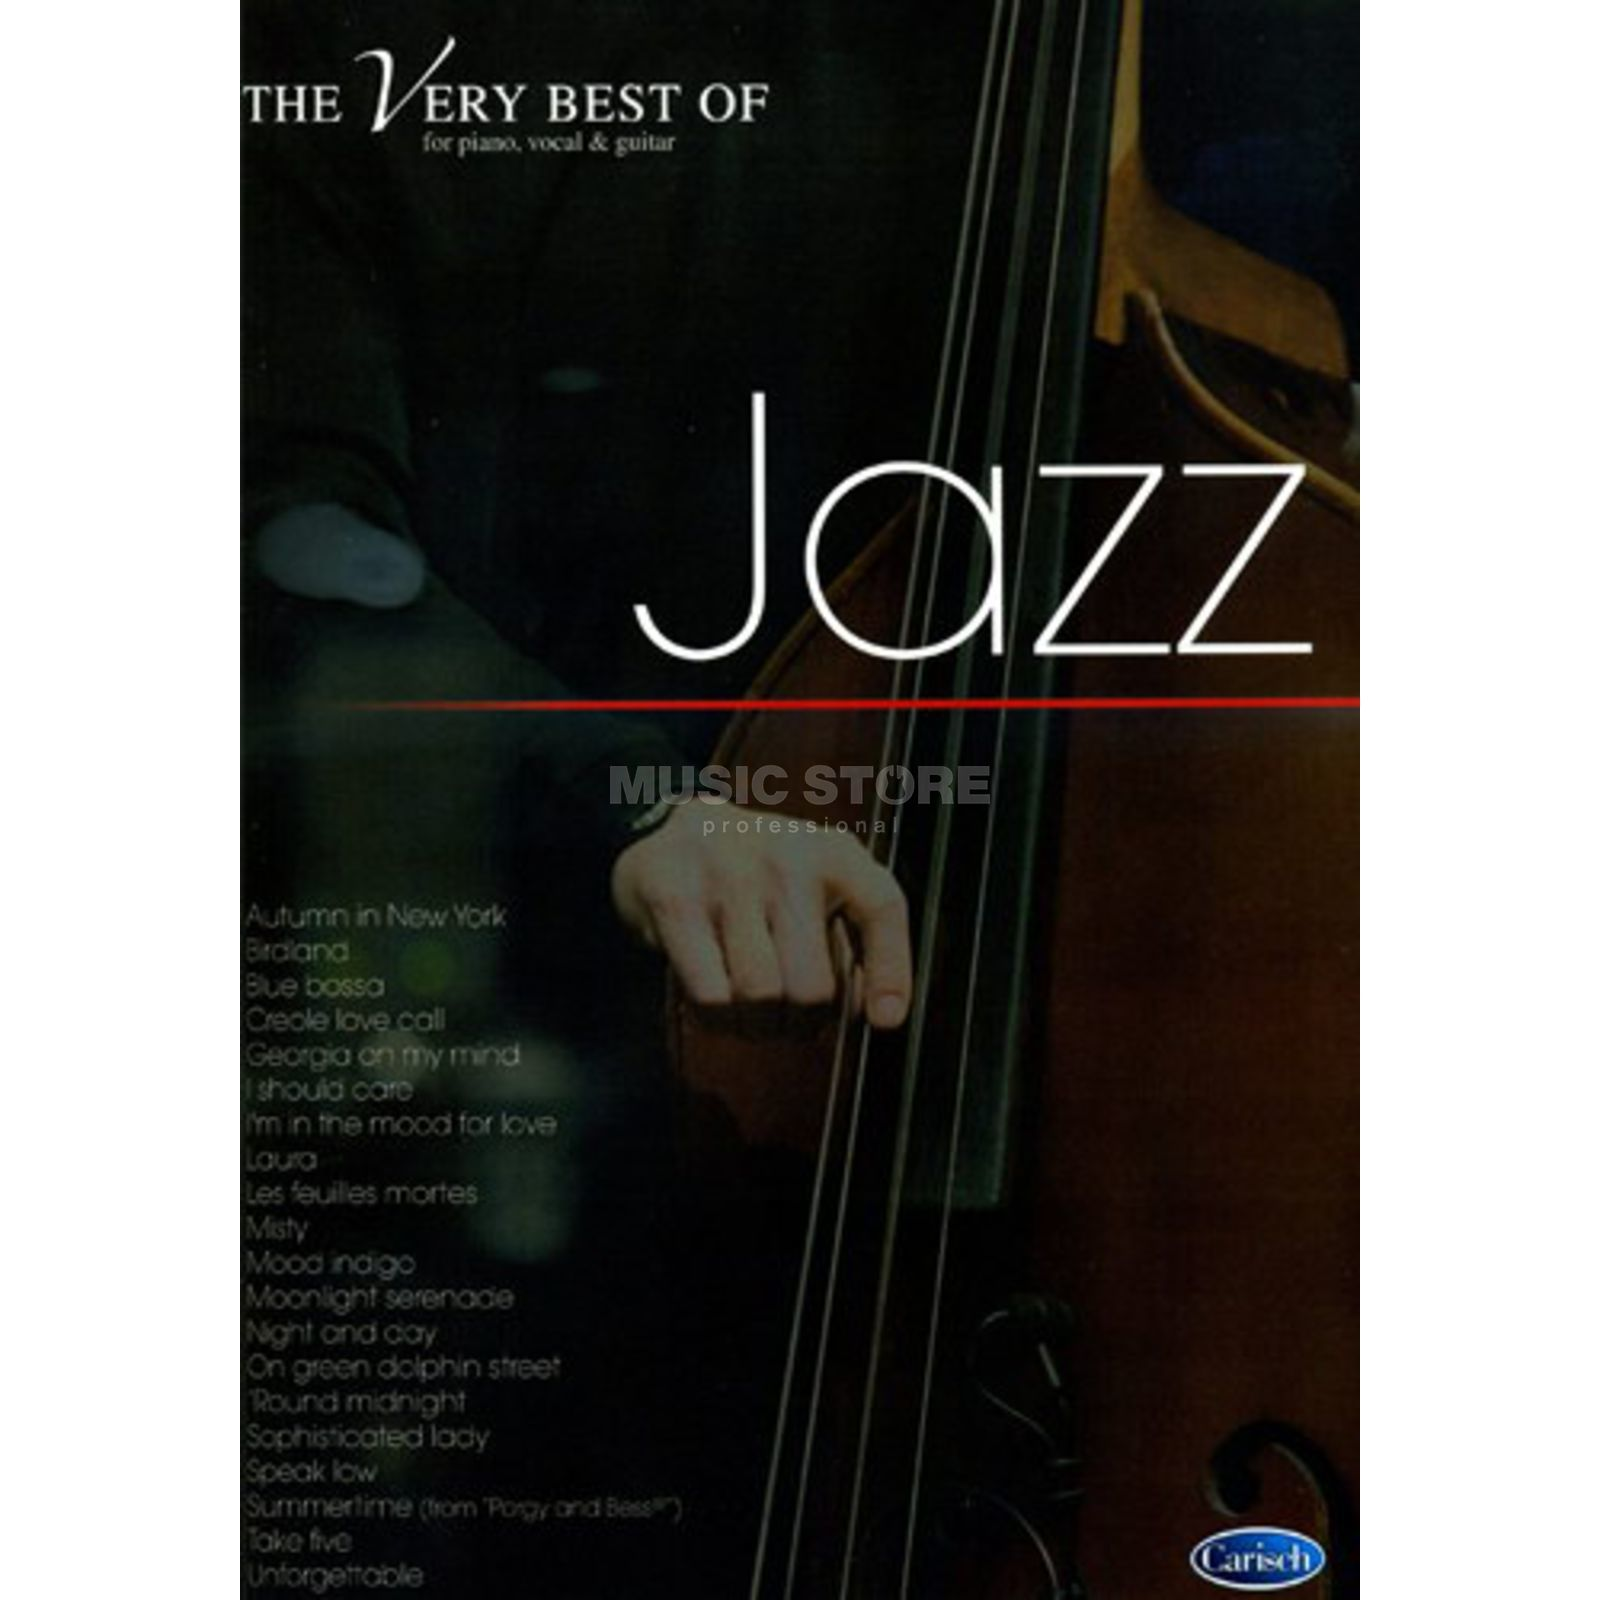 Carisch-Verlag The Very Best Of Jazz Produktbild